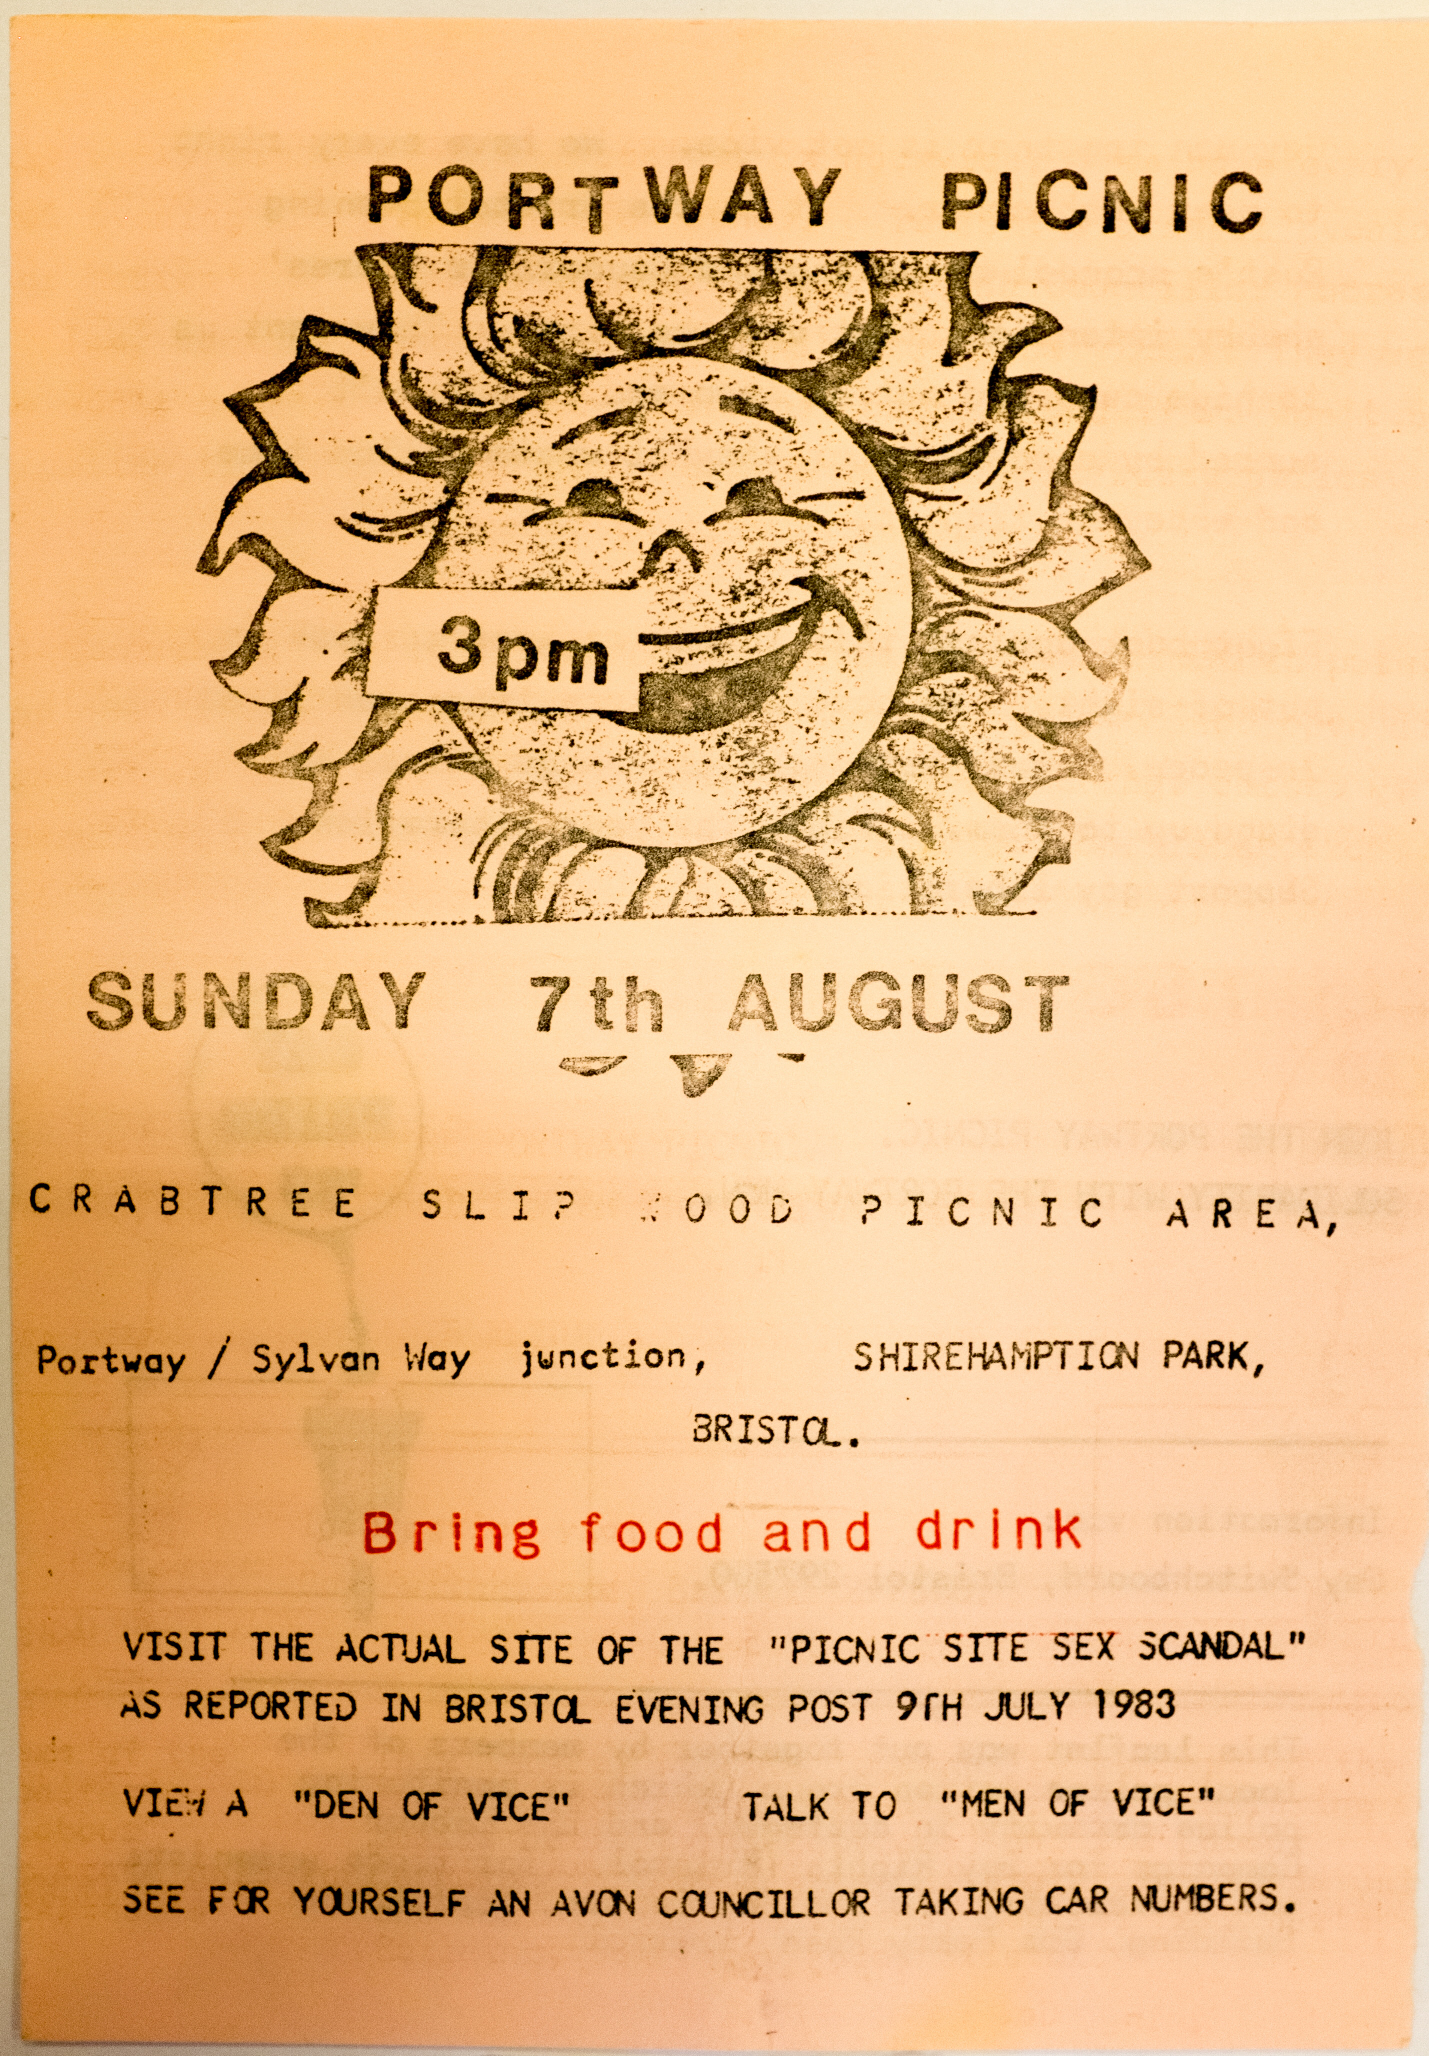 The front page of a flyer for a picnic at Shirehampton Park in Bristol.